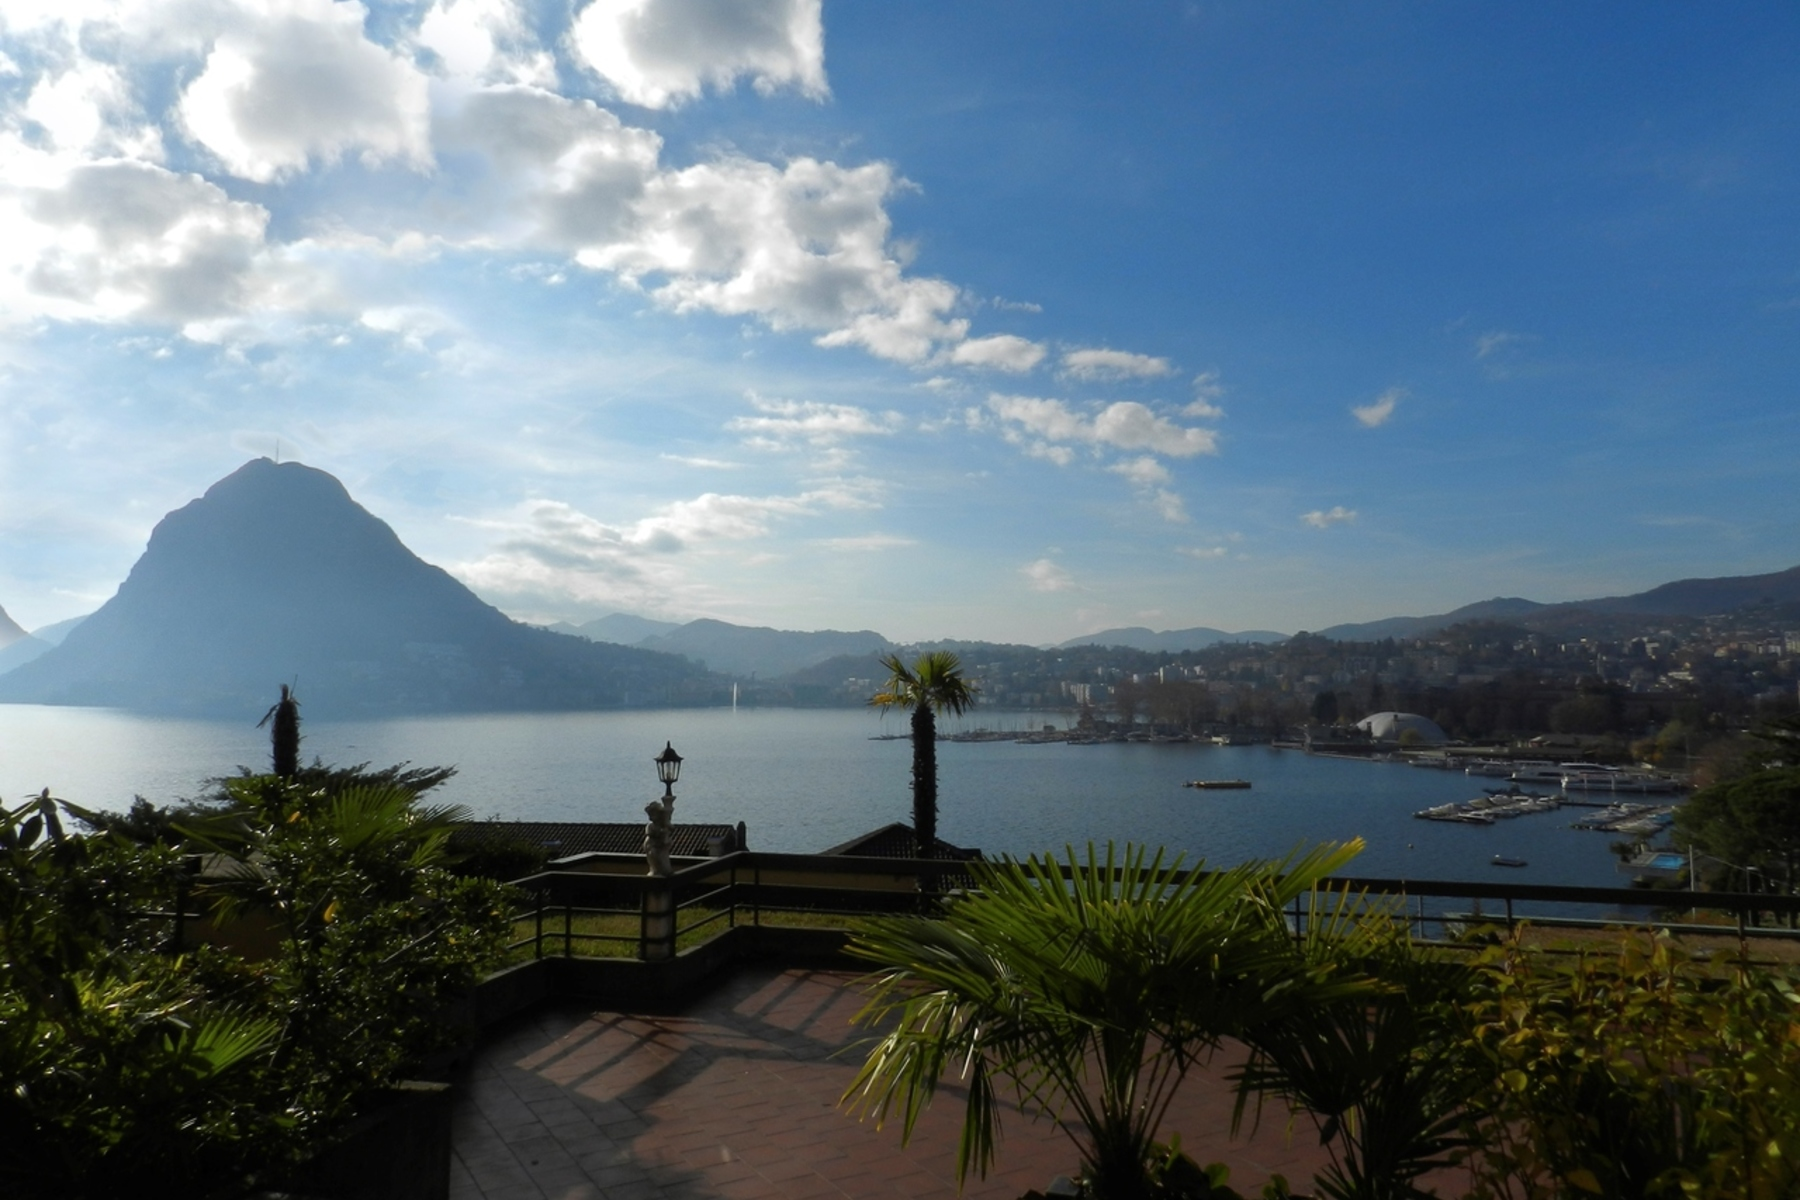 Apartment for Sale at Apartment with a large panoramic terrace Castagnola, Castagnola, Ticino, 6976 Switzerland